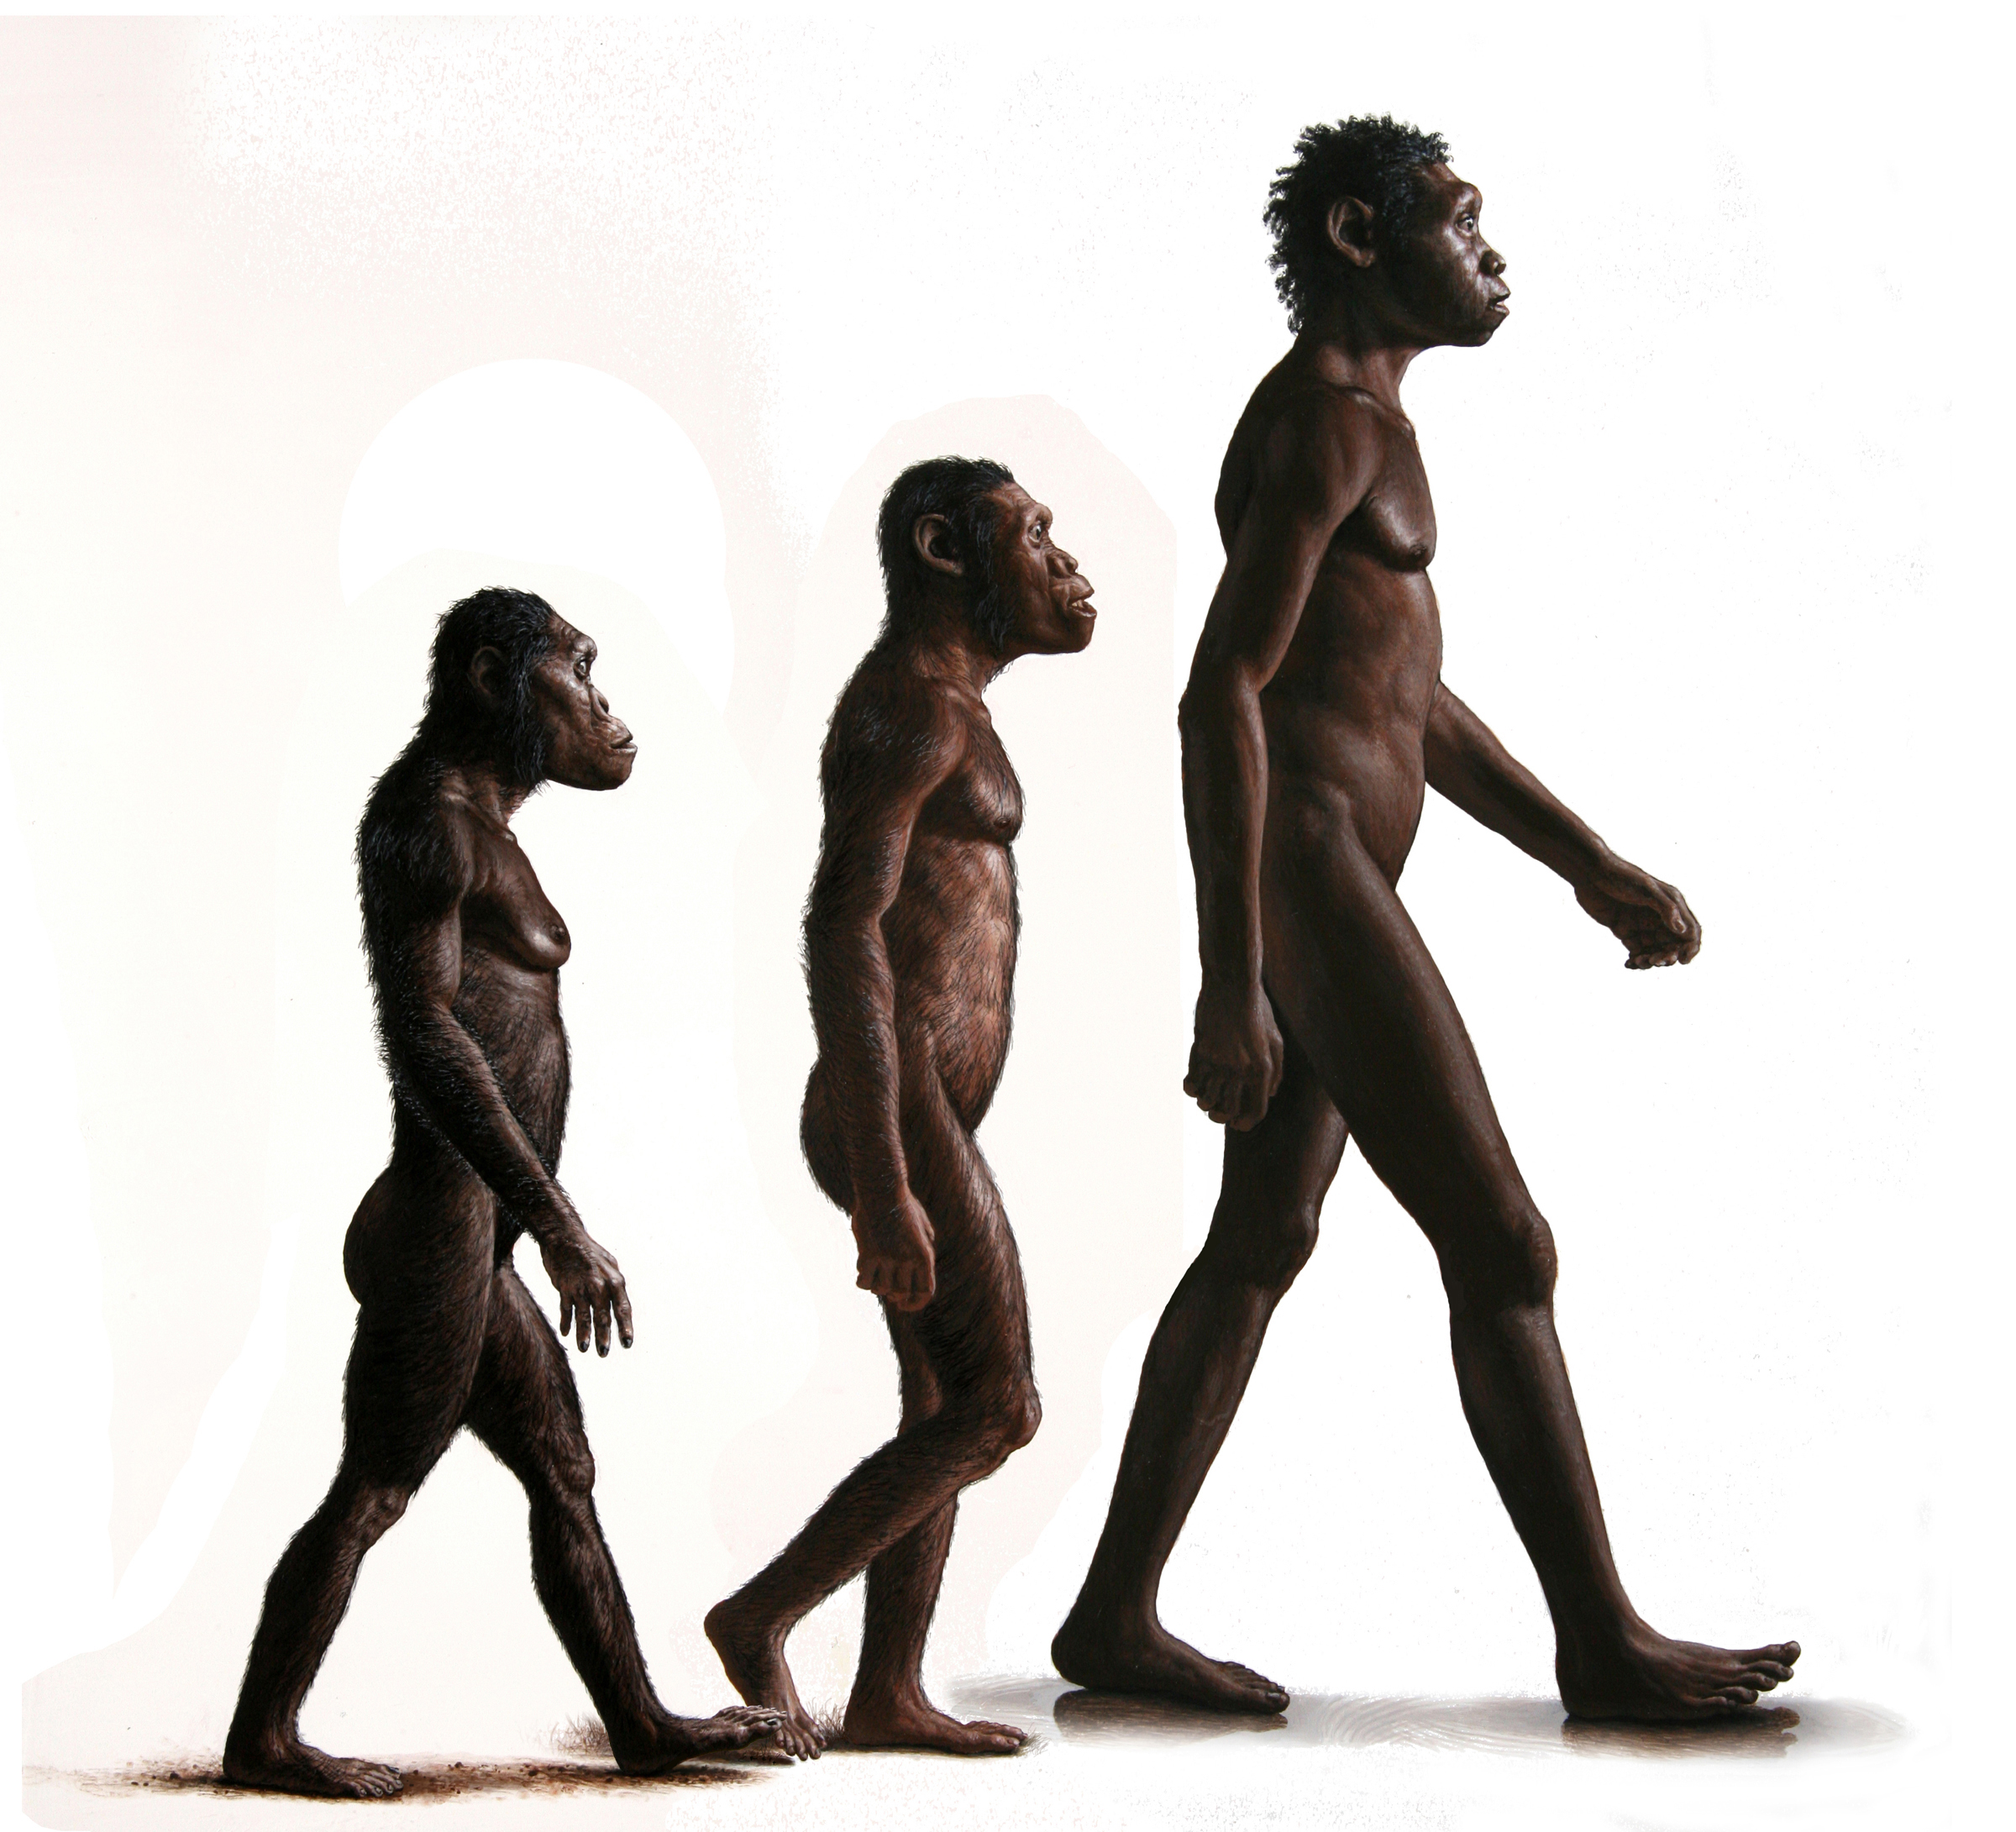 Australopithecus sediba with A. afarensis (Lucy) and Homo erectus (Turkana Boy).